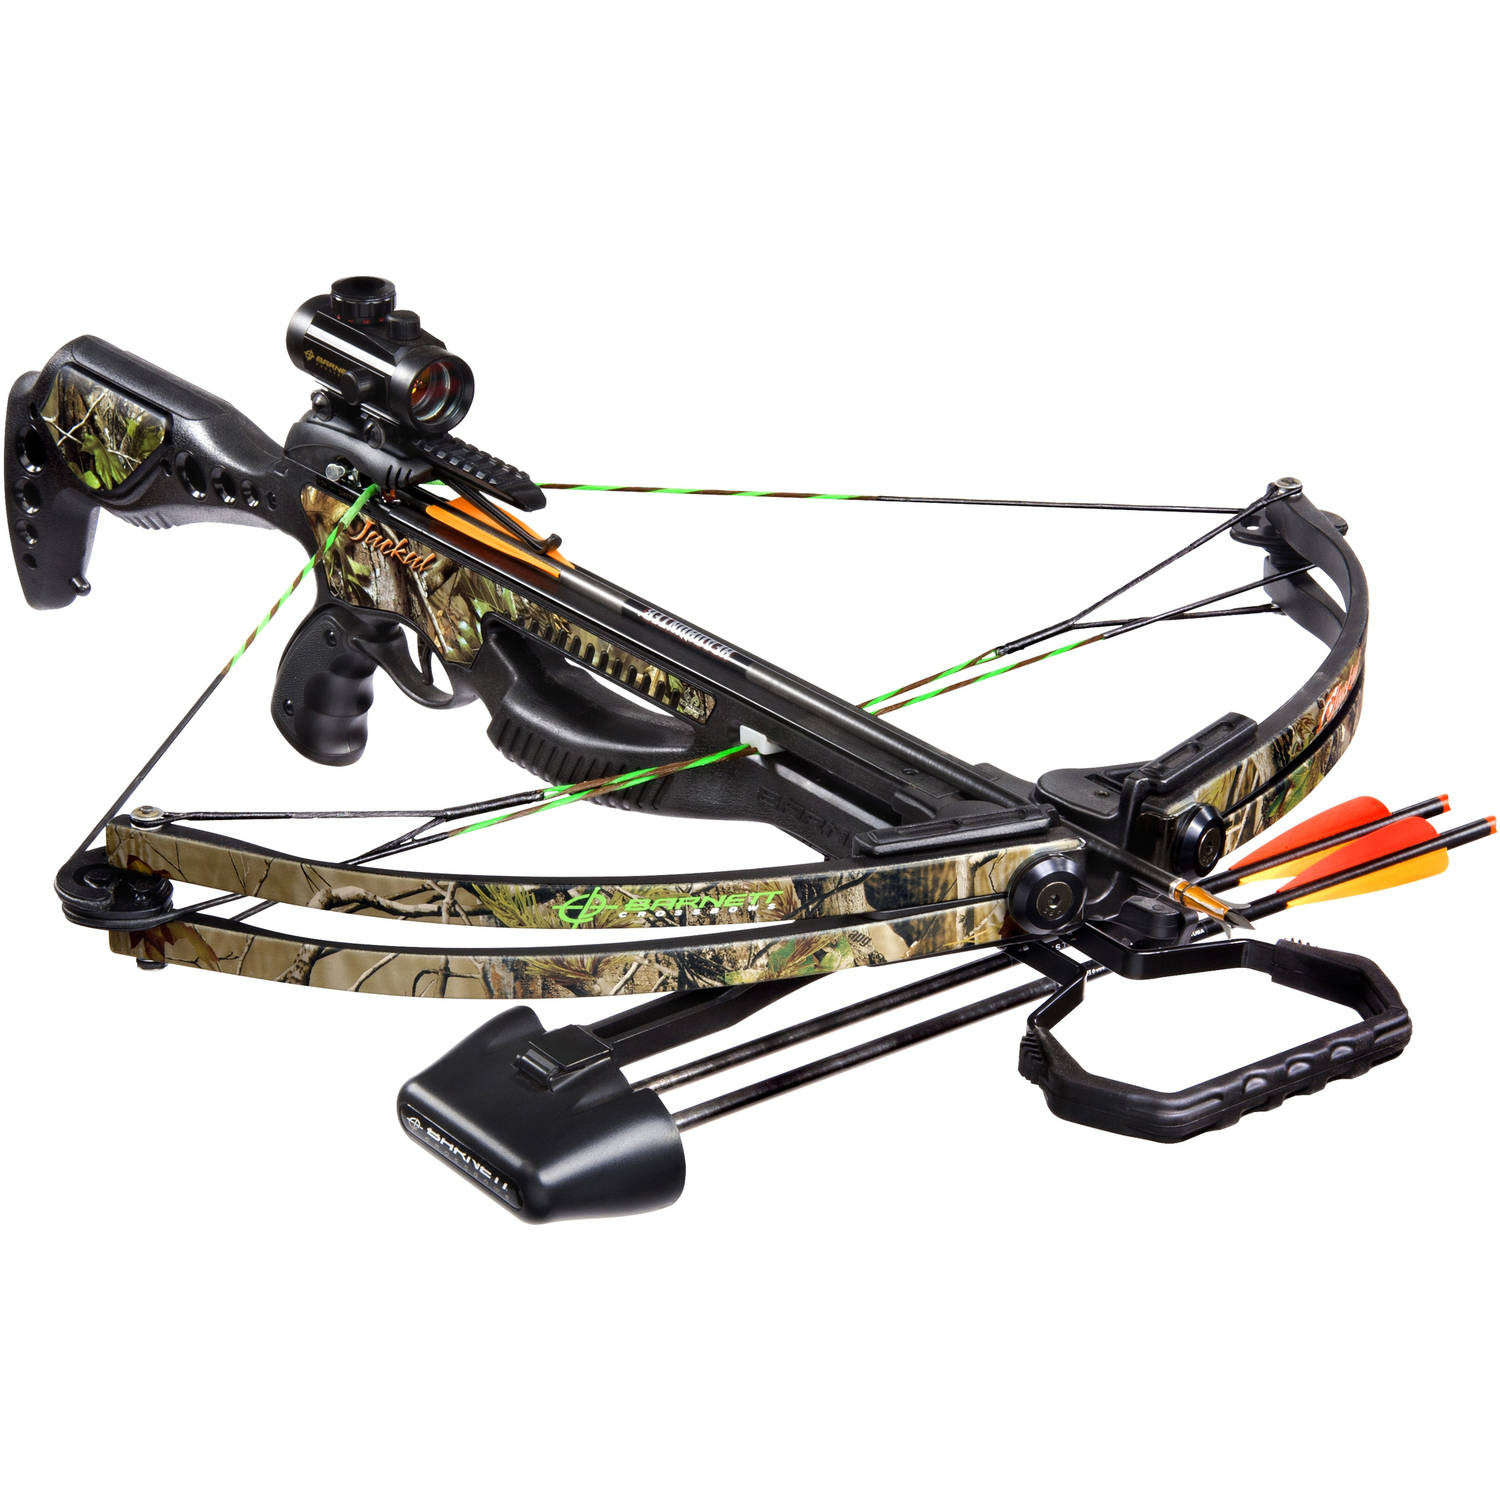 Barnett Jackal Crossbow Package, Camouflage